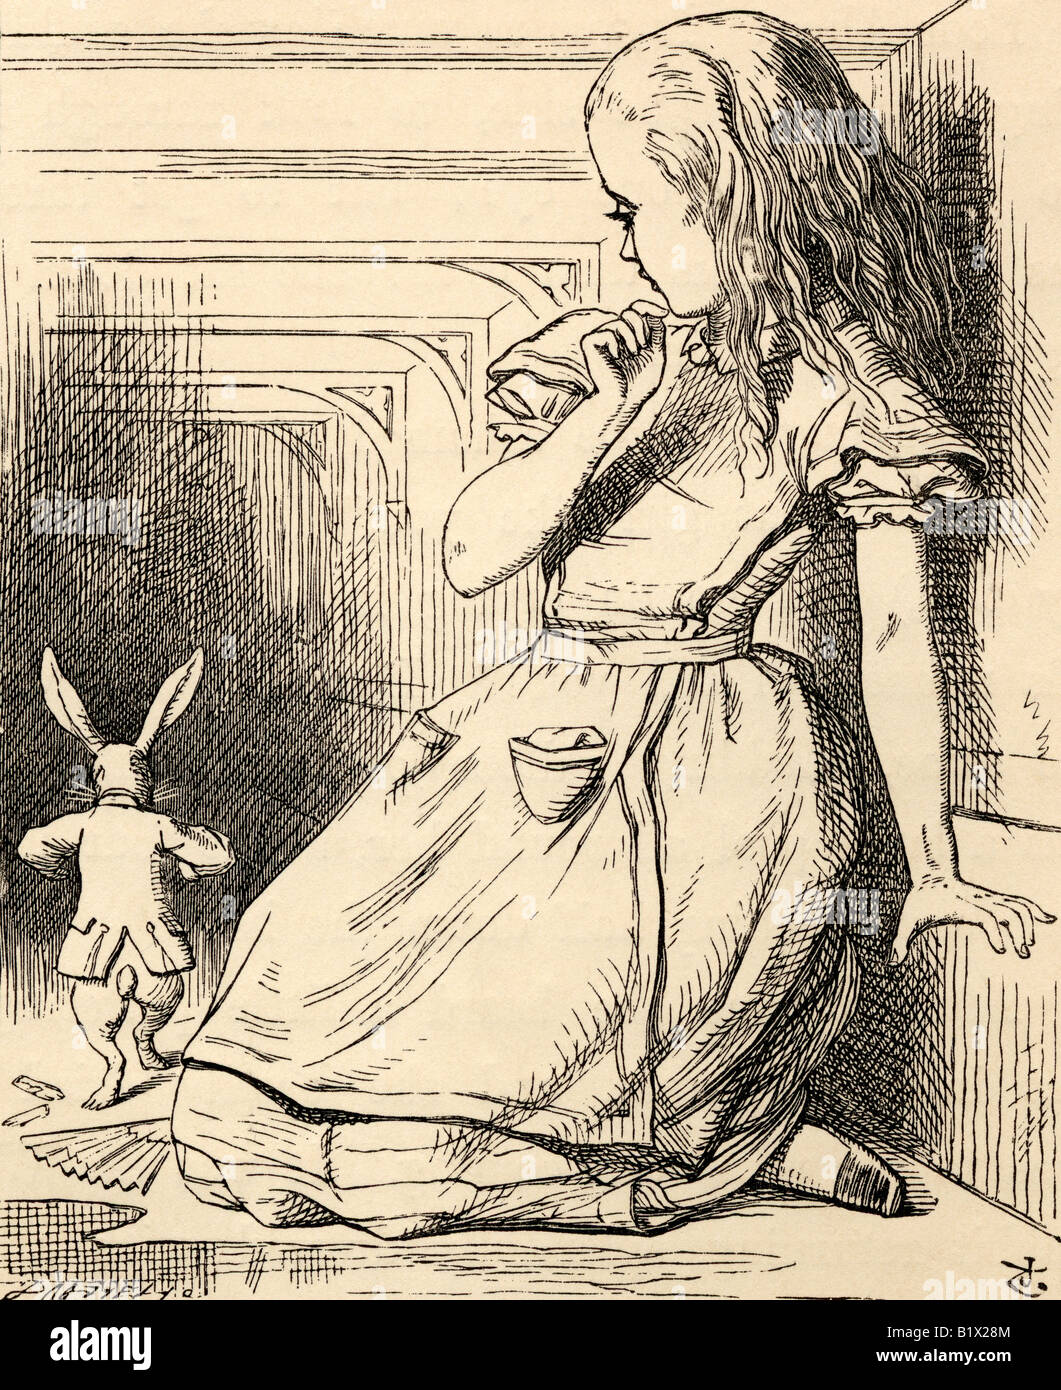 The White Rabbit is late from Alice's Adventures in Wonderland - Stock Image